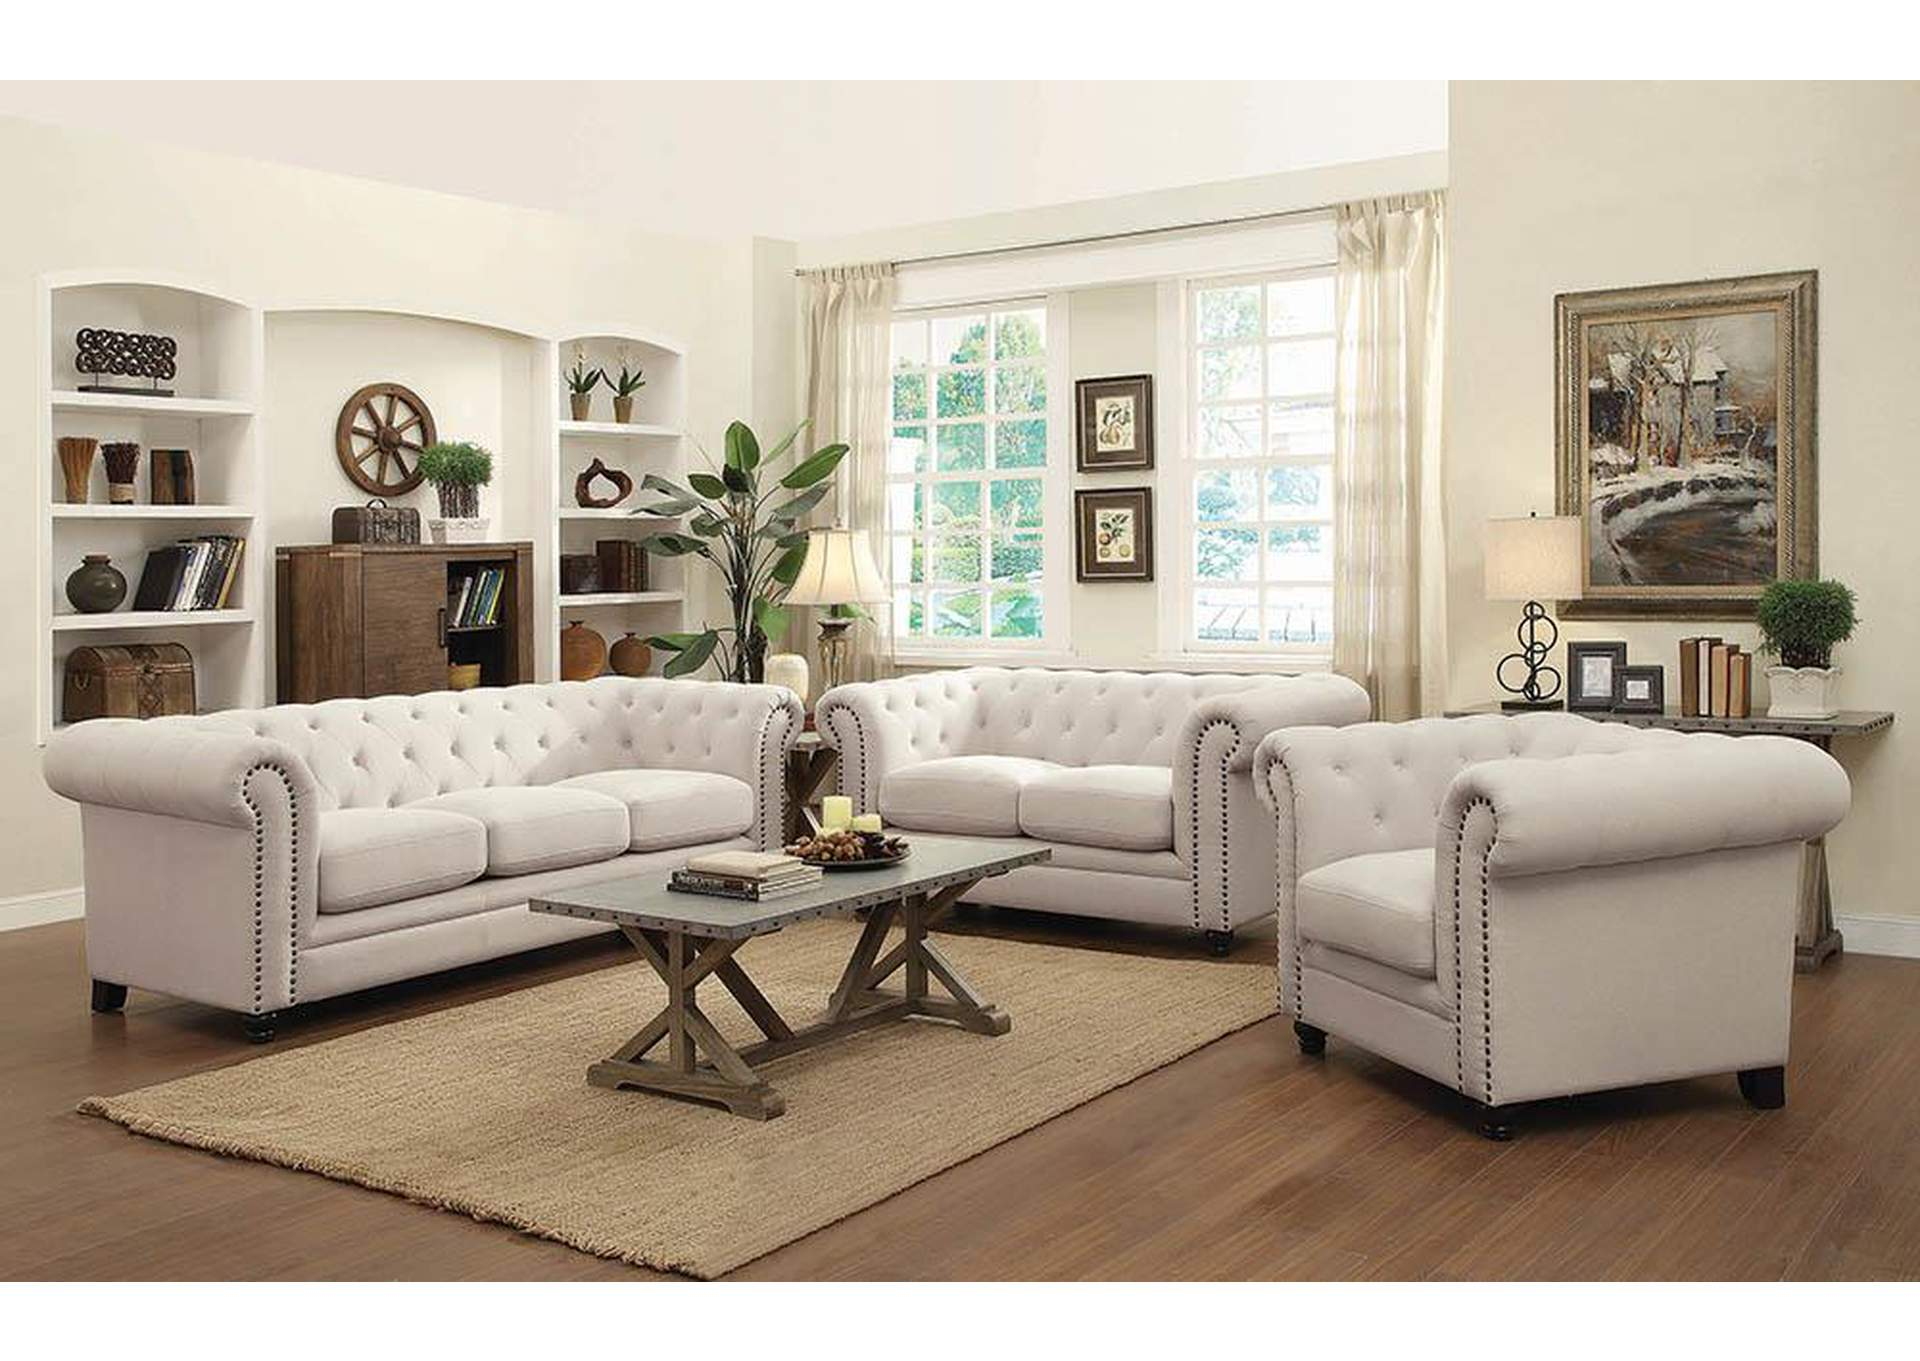 Best Buy Furniture And Mattress Cream Loveseat